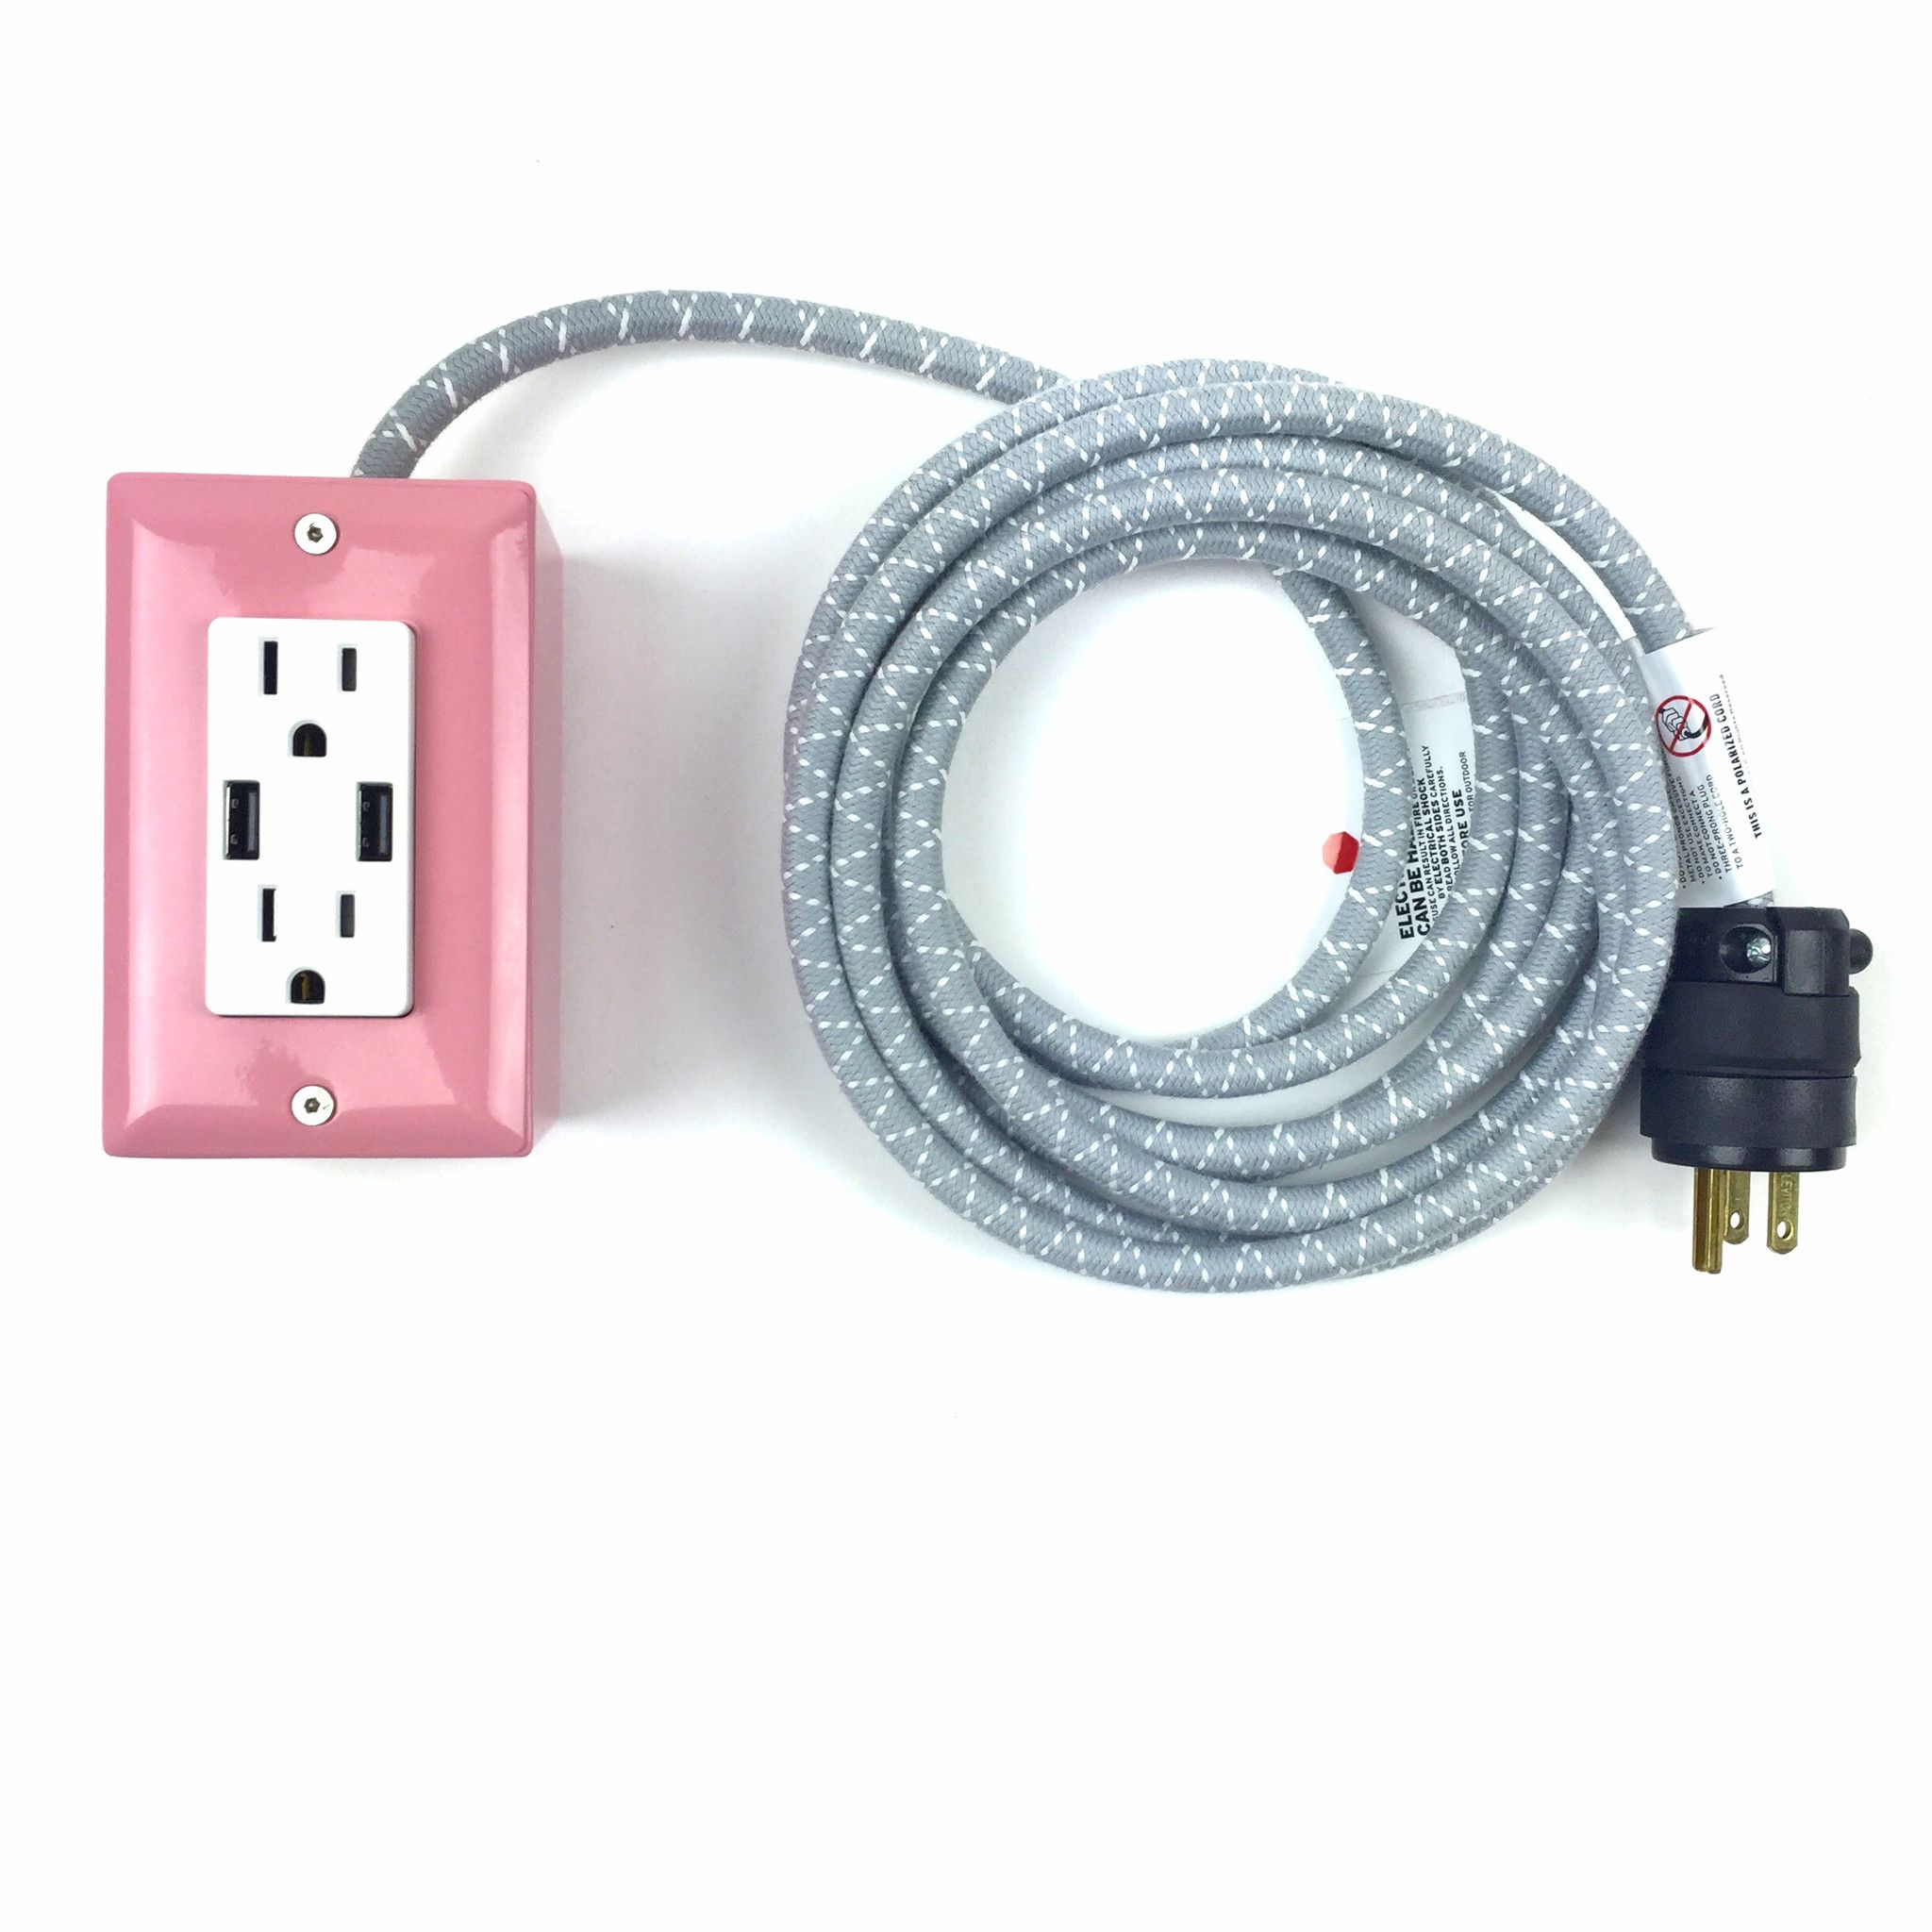 The First Smart Chip Extension Cord 12 Extō Dual Usb Dual Outlet Candy Pink Dual Usb Extension Cord Pink Candy